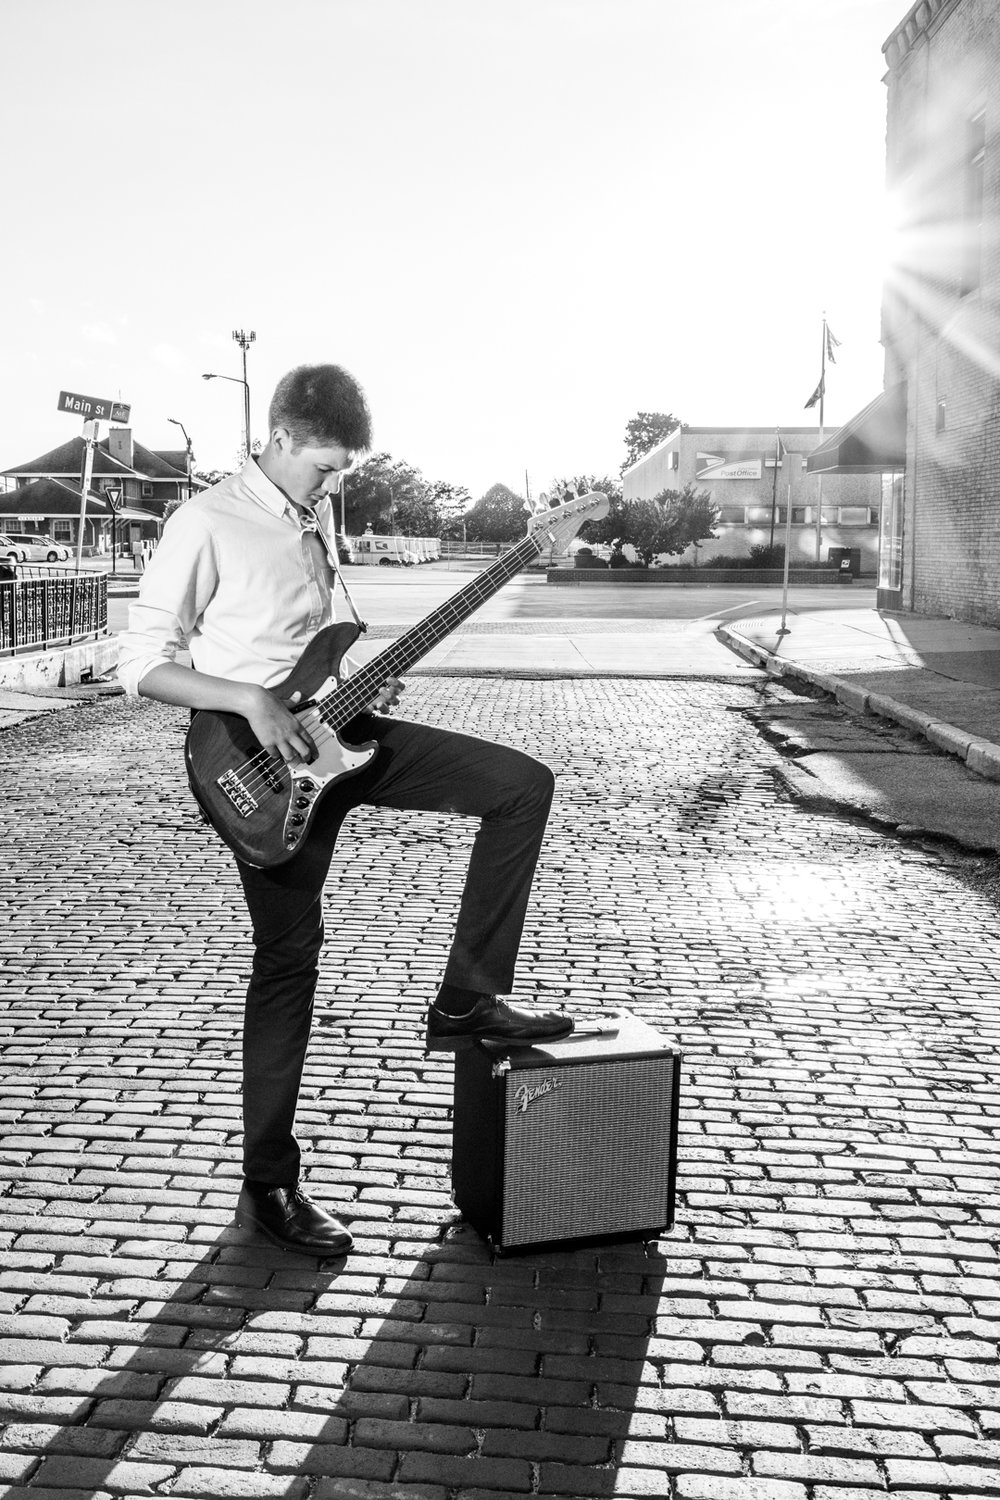 Playing bass in the street